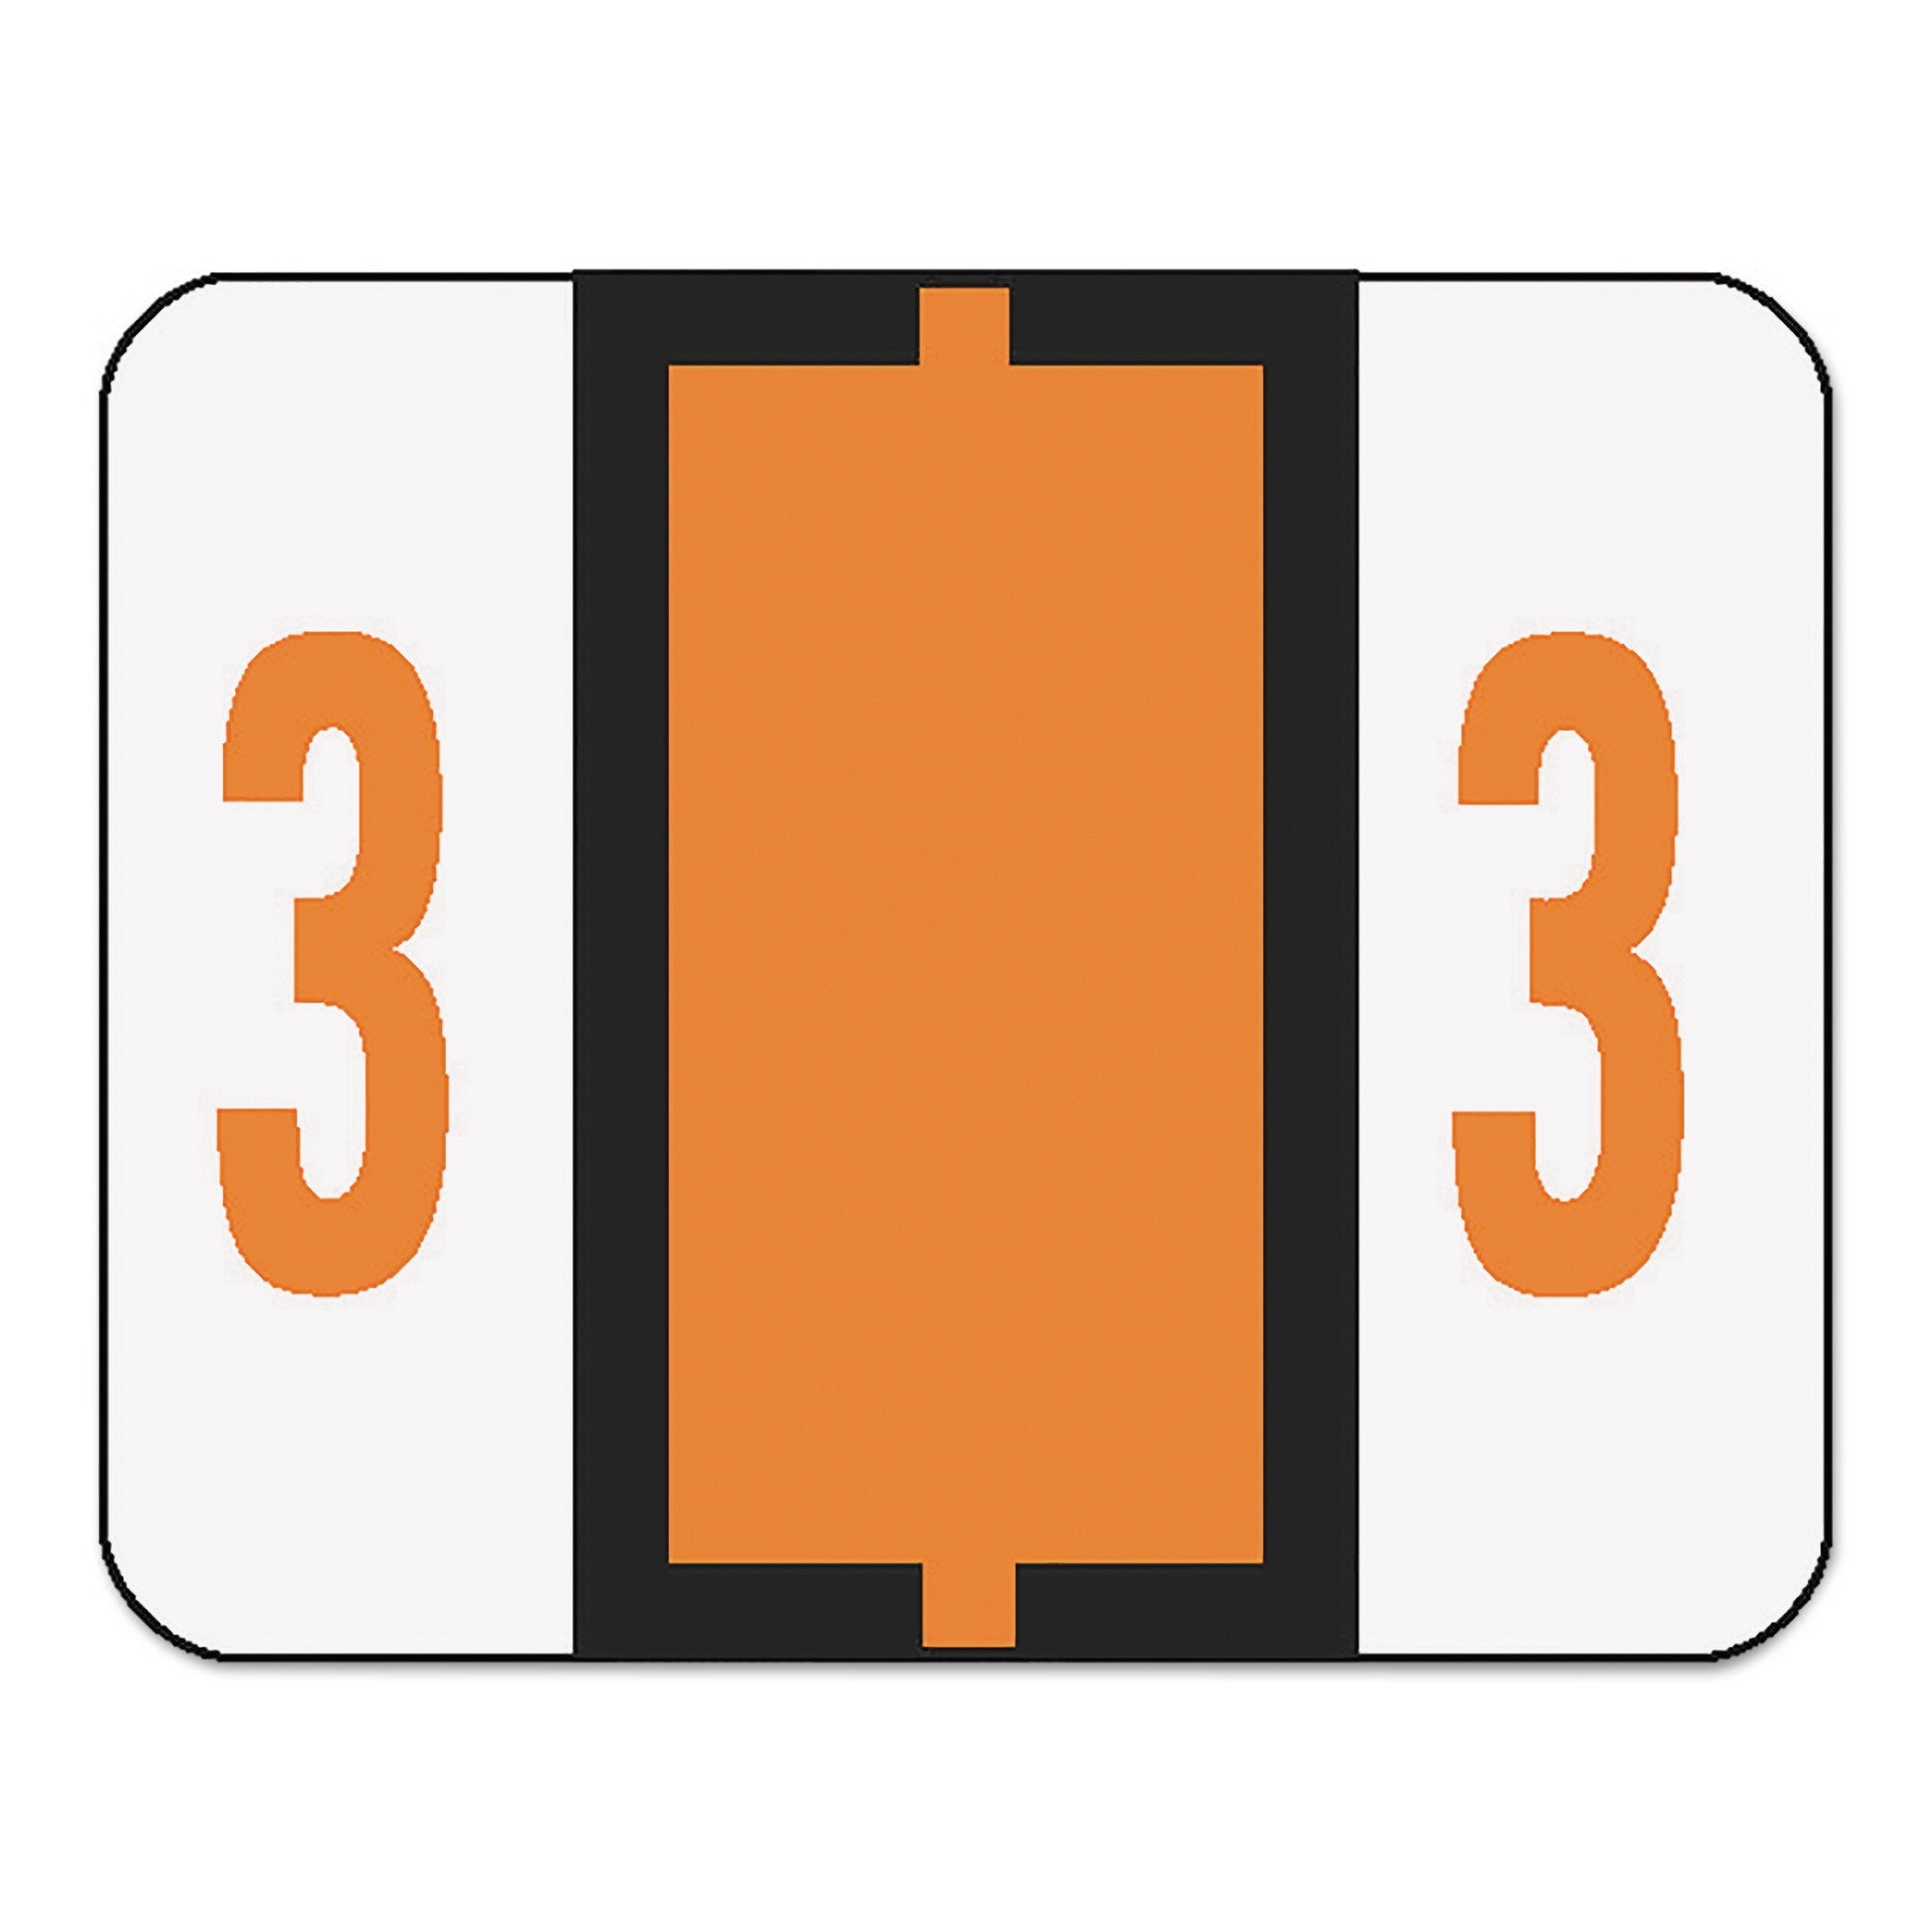 Smead Single Digit End Tab Labels, Number 3, Dark Orange, 500/Roll